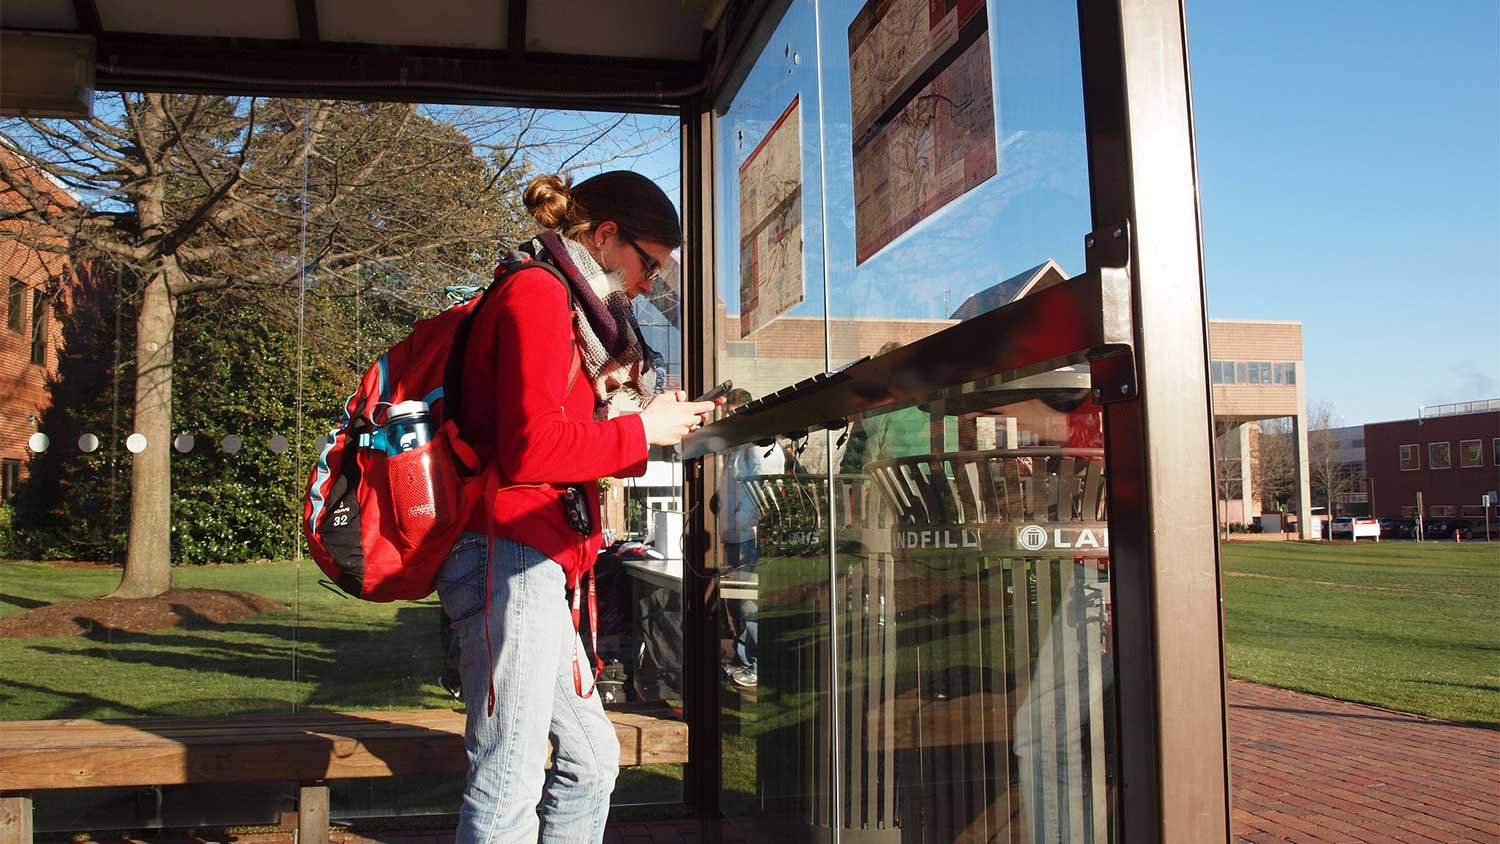 Nc State Adds Solar Charging Station At Bus Stop